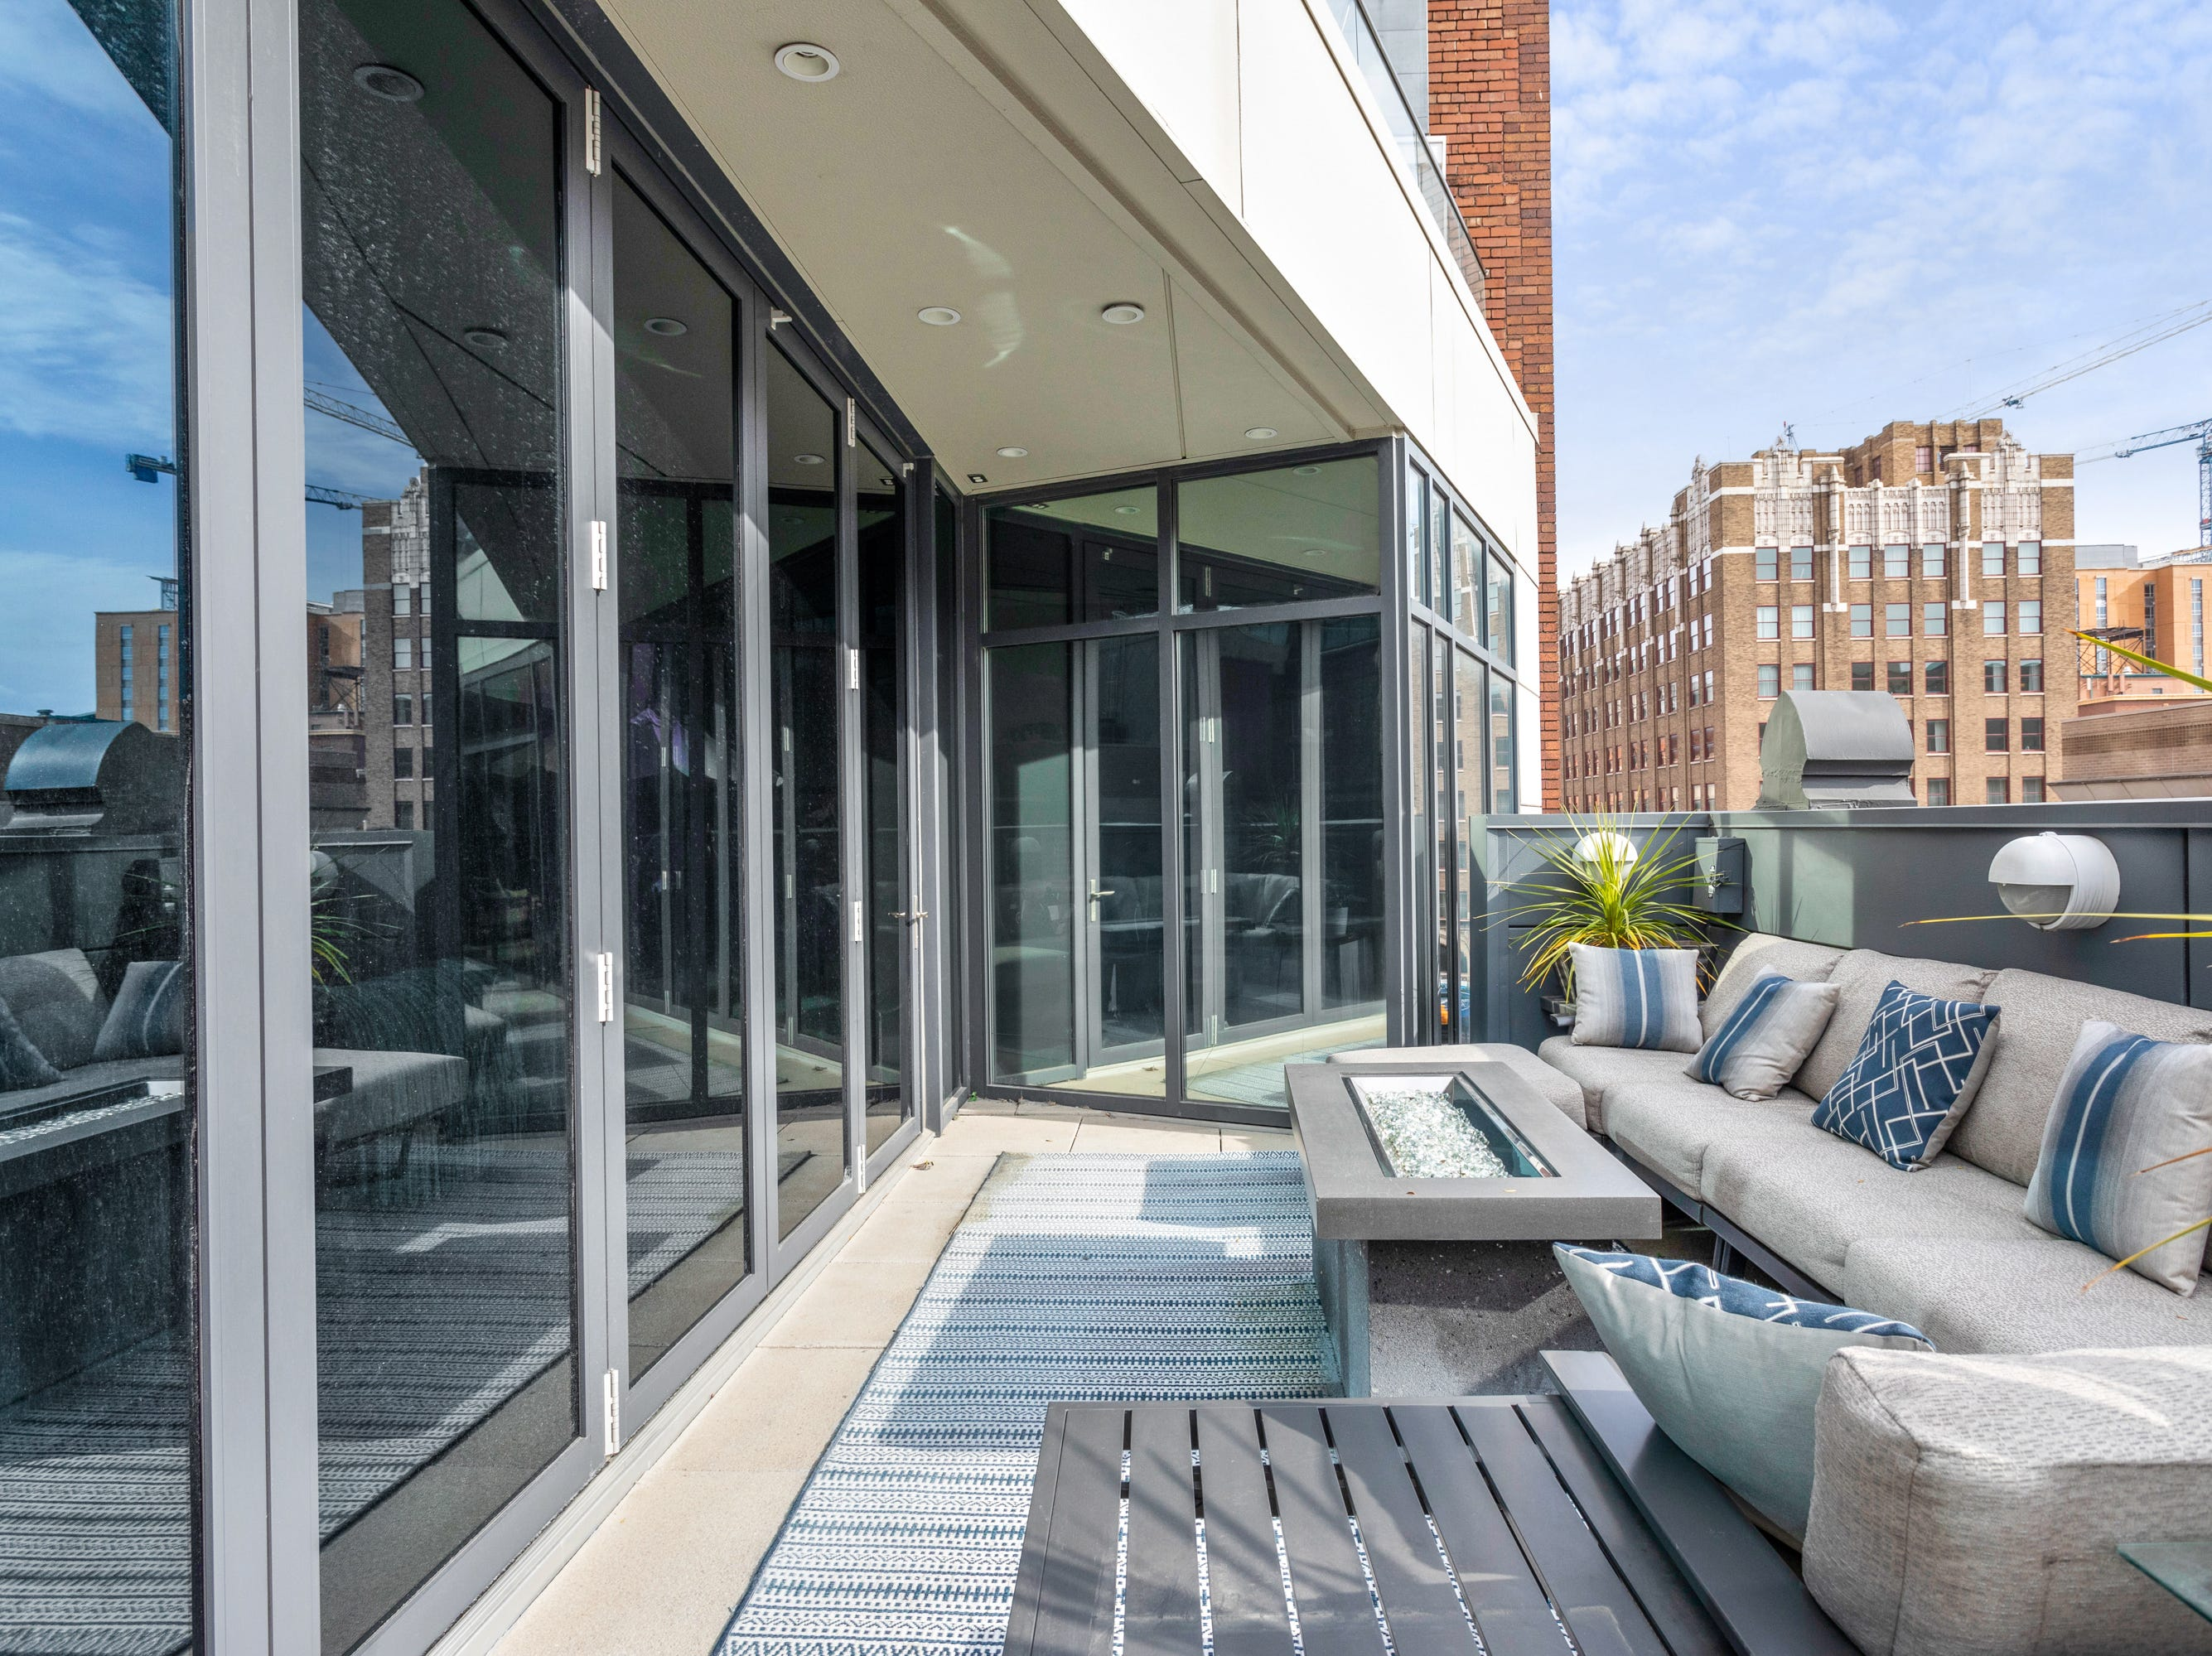 On one of the terraces, a glass wall is made of doors to make the transition from indoors to outdoors seamless.